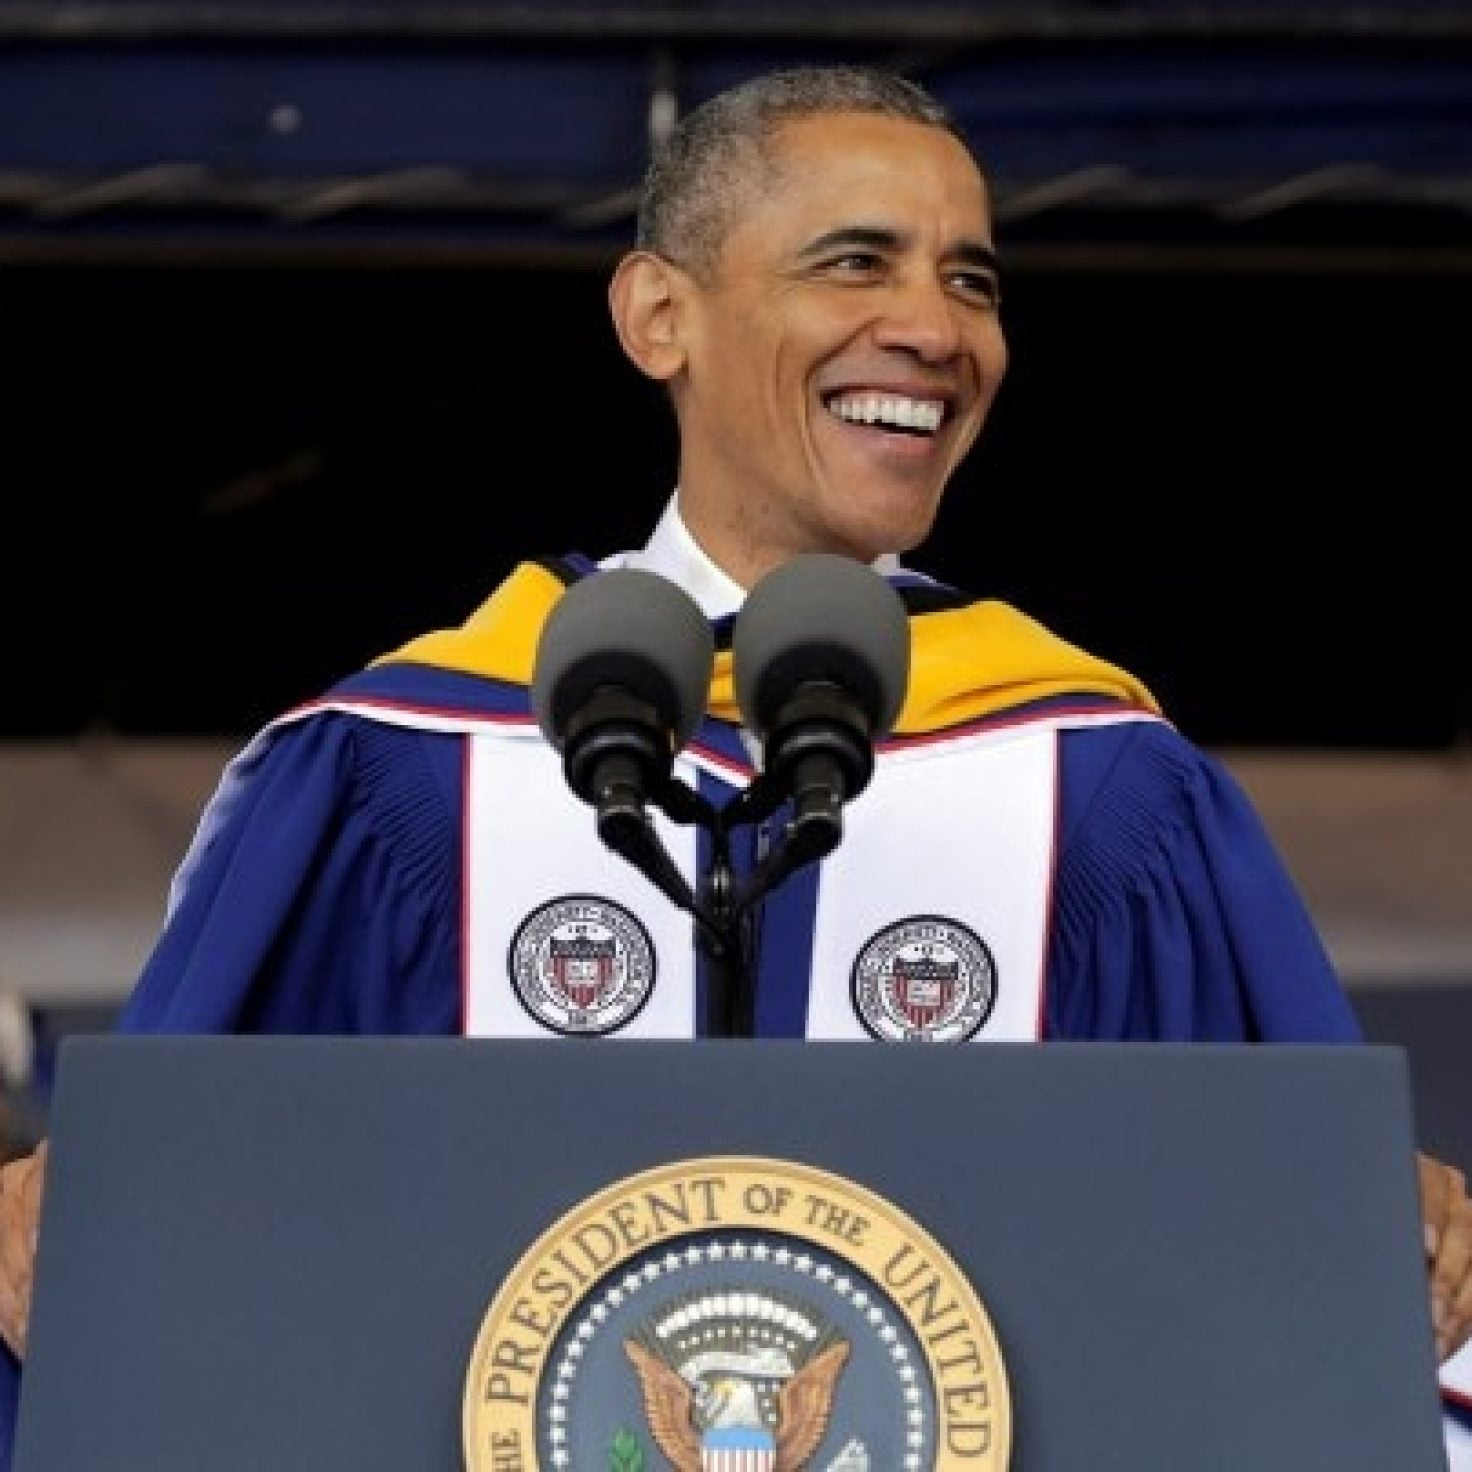 Barack Obama Tells 2020 HBCU Graduates: 'You're The Folks We've Been Waiting For To Come Along'